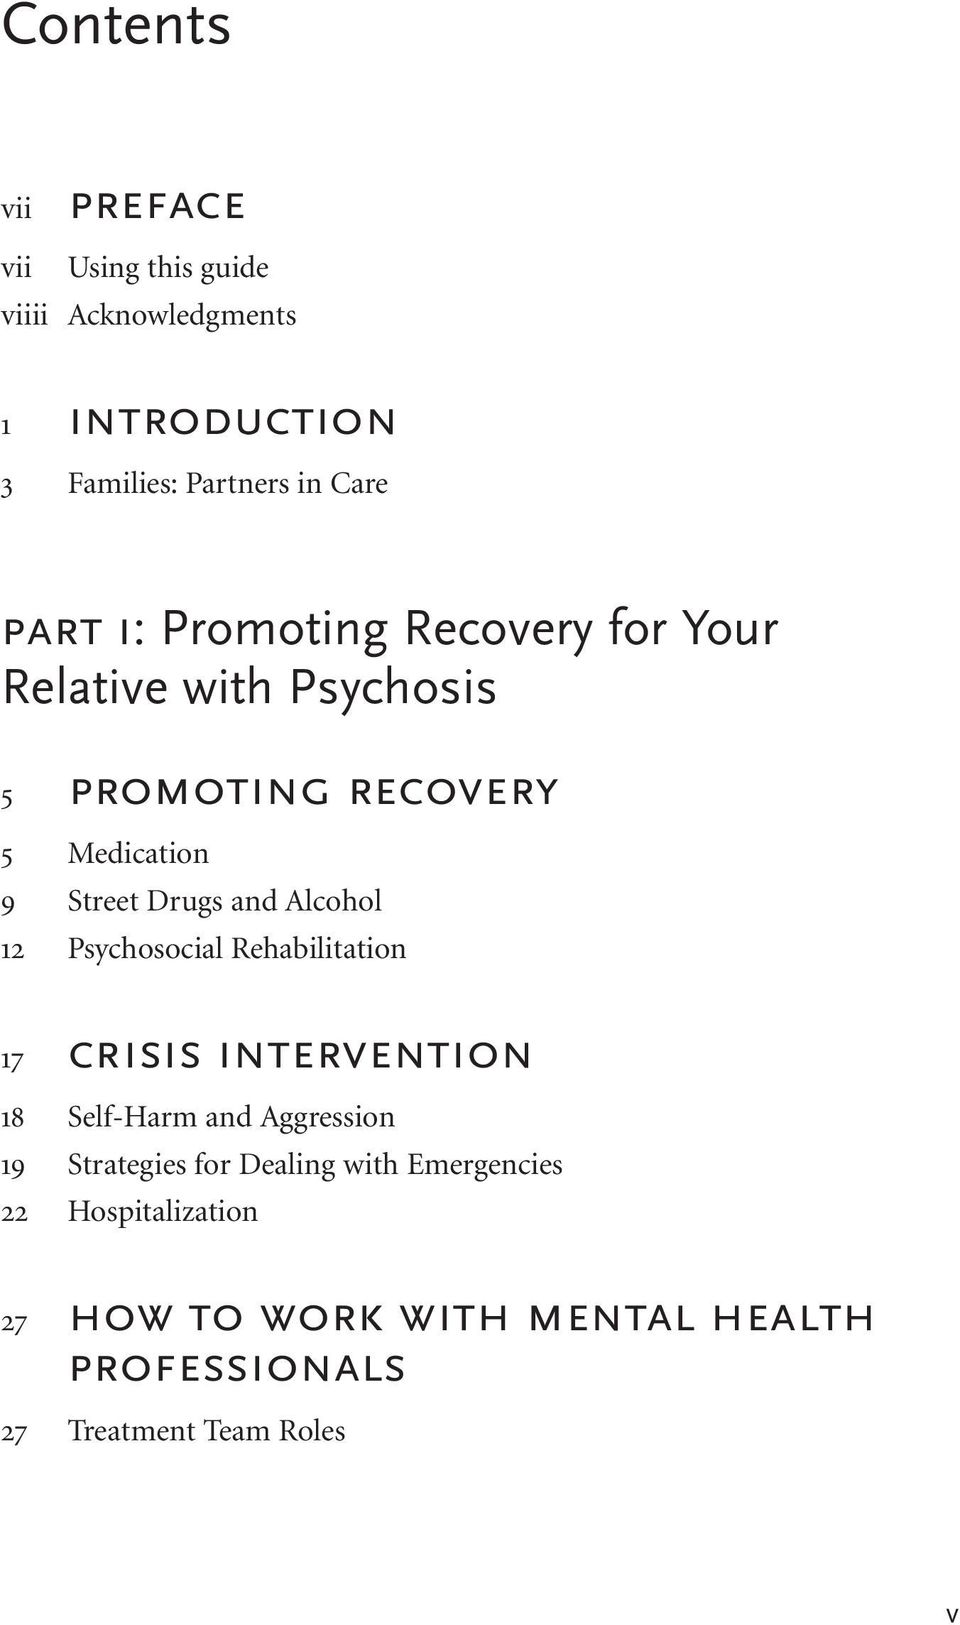 and Alcohol 12 Psychosocial Rehabilitation 17 crisis intervention 18 Self-Harm and Aggression 19 Strategies for